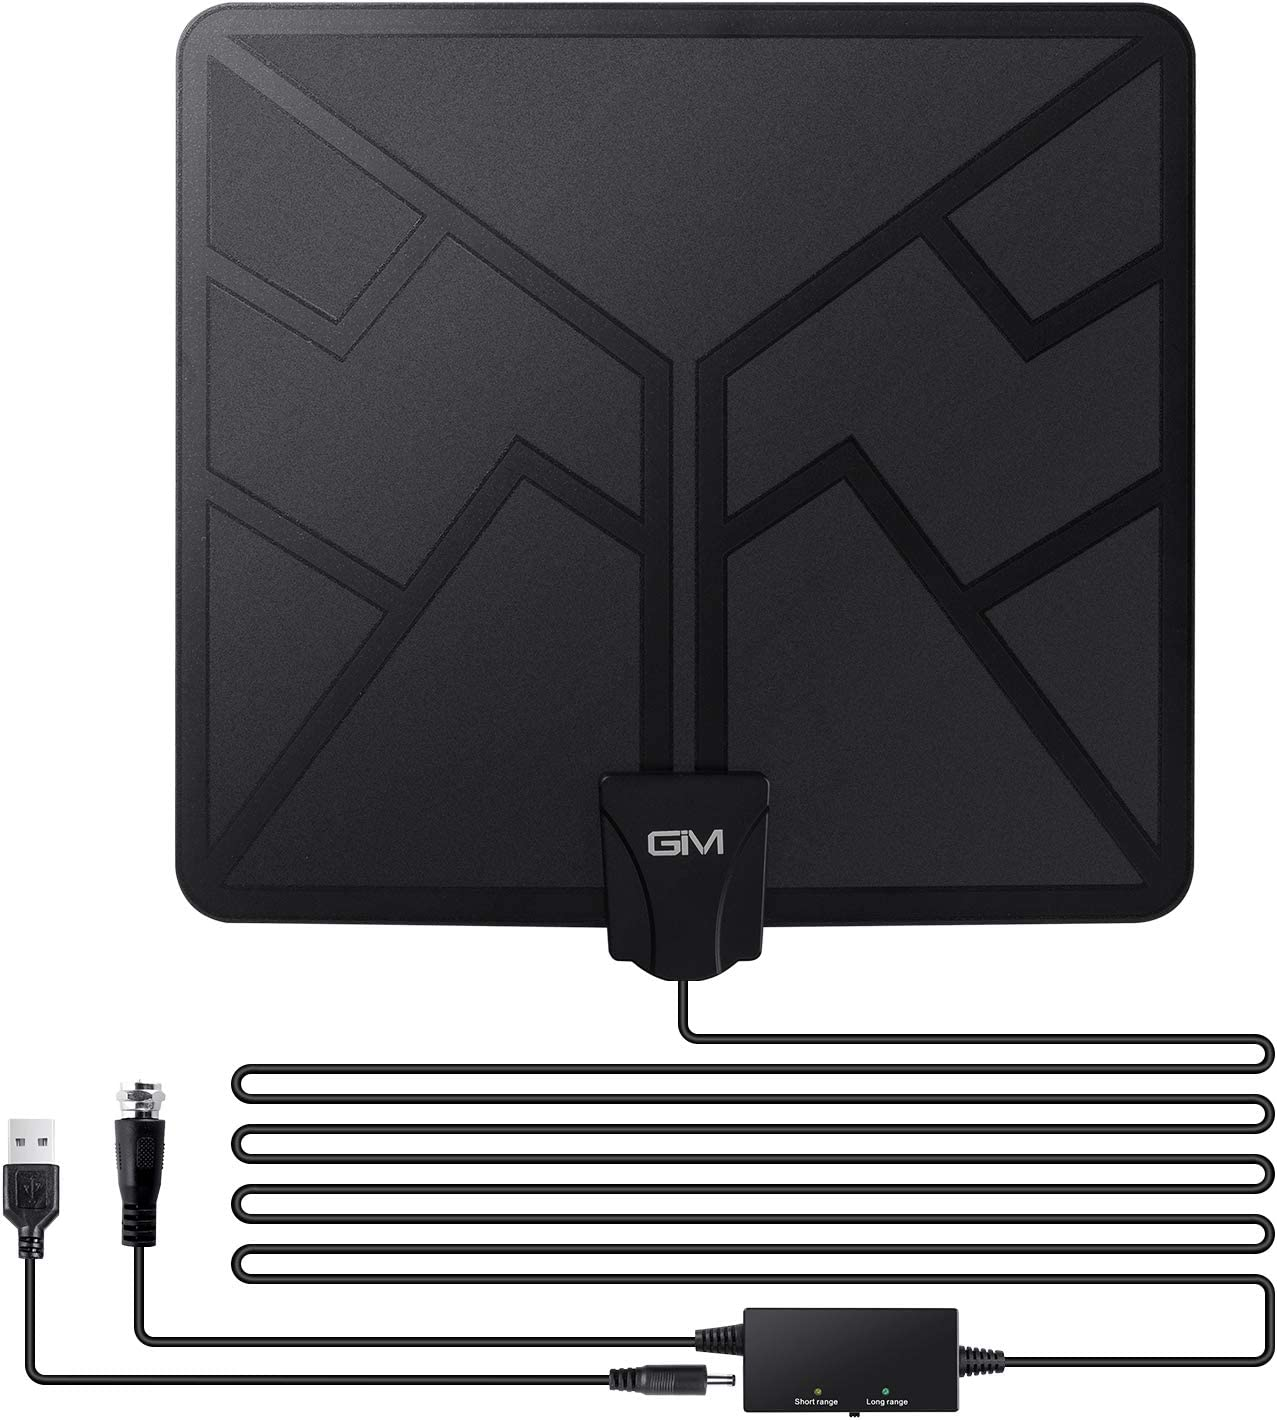 [Latest 2020] GIM TV Antenna Amplified HD Digital Indoor Antennas, 120 Miles Range, Amplifier Signal Booster Support 4K 1080P UHF VHF Freeview HDTV Channels - 16.5 ft Coaxial Cable Included